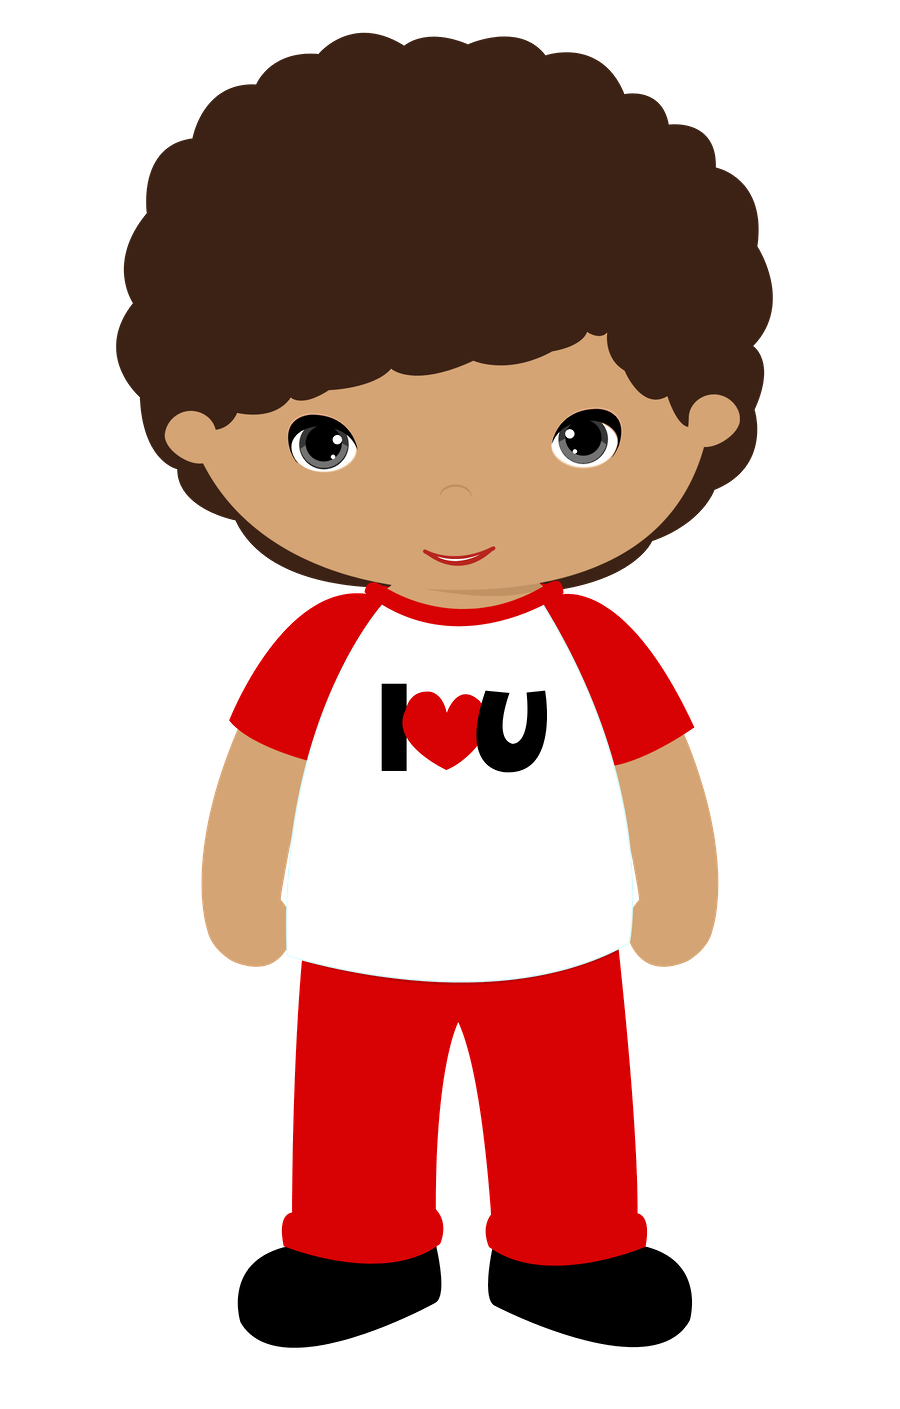 Quilt clipart boy. Pin by nadia saleh